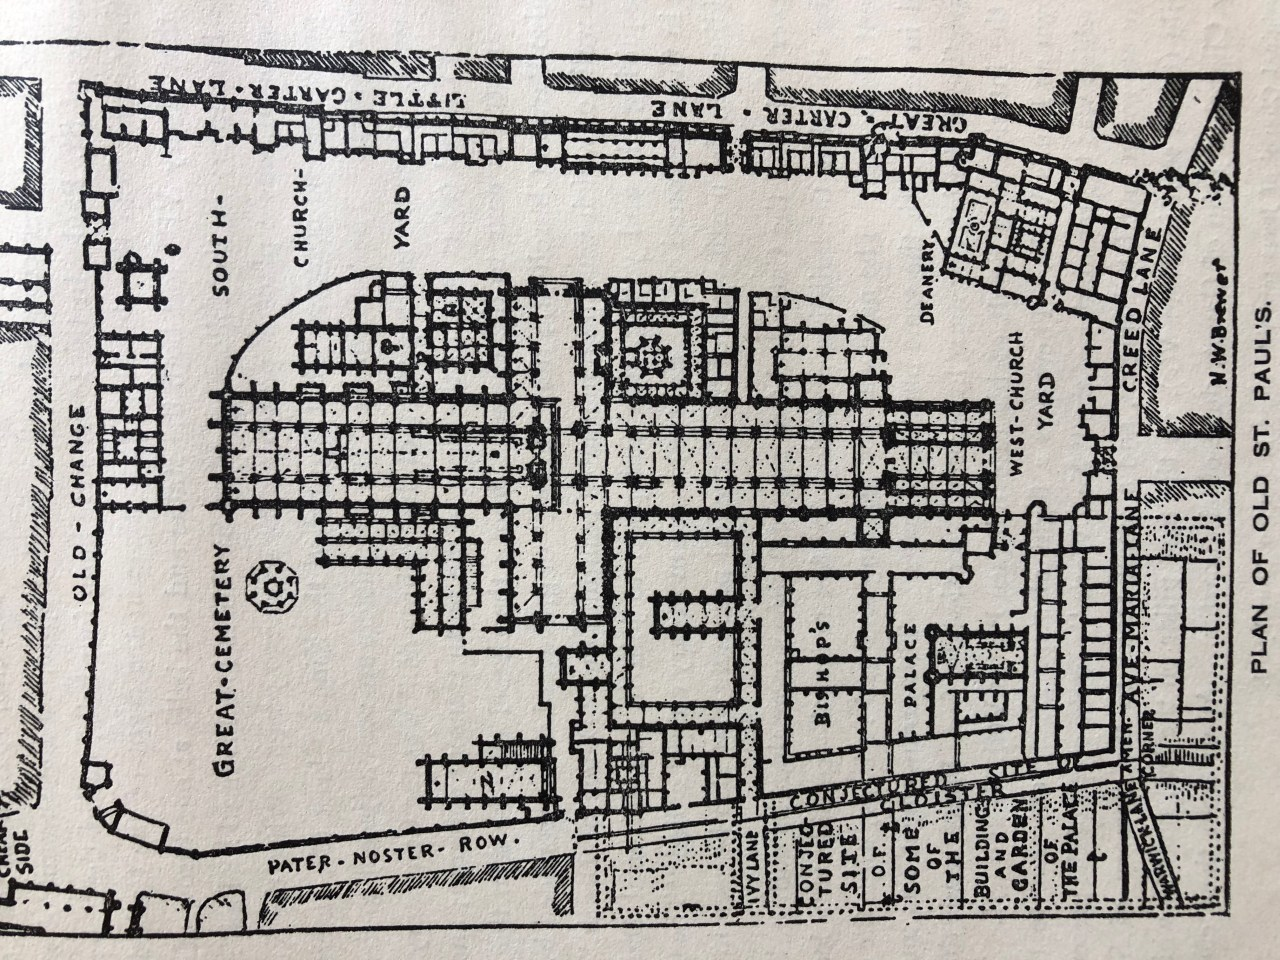 Plan of Old St Paul's showing The Bishop of London's Palace